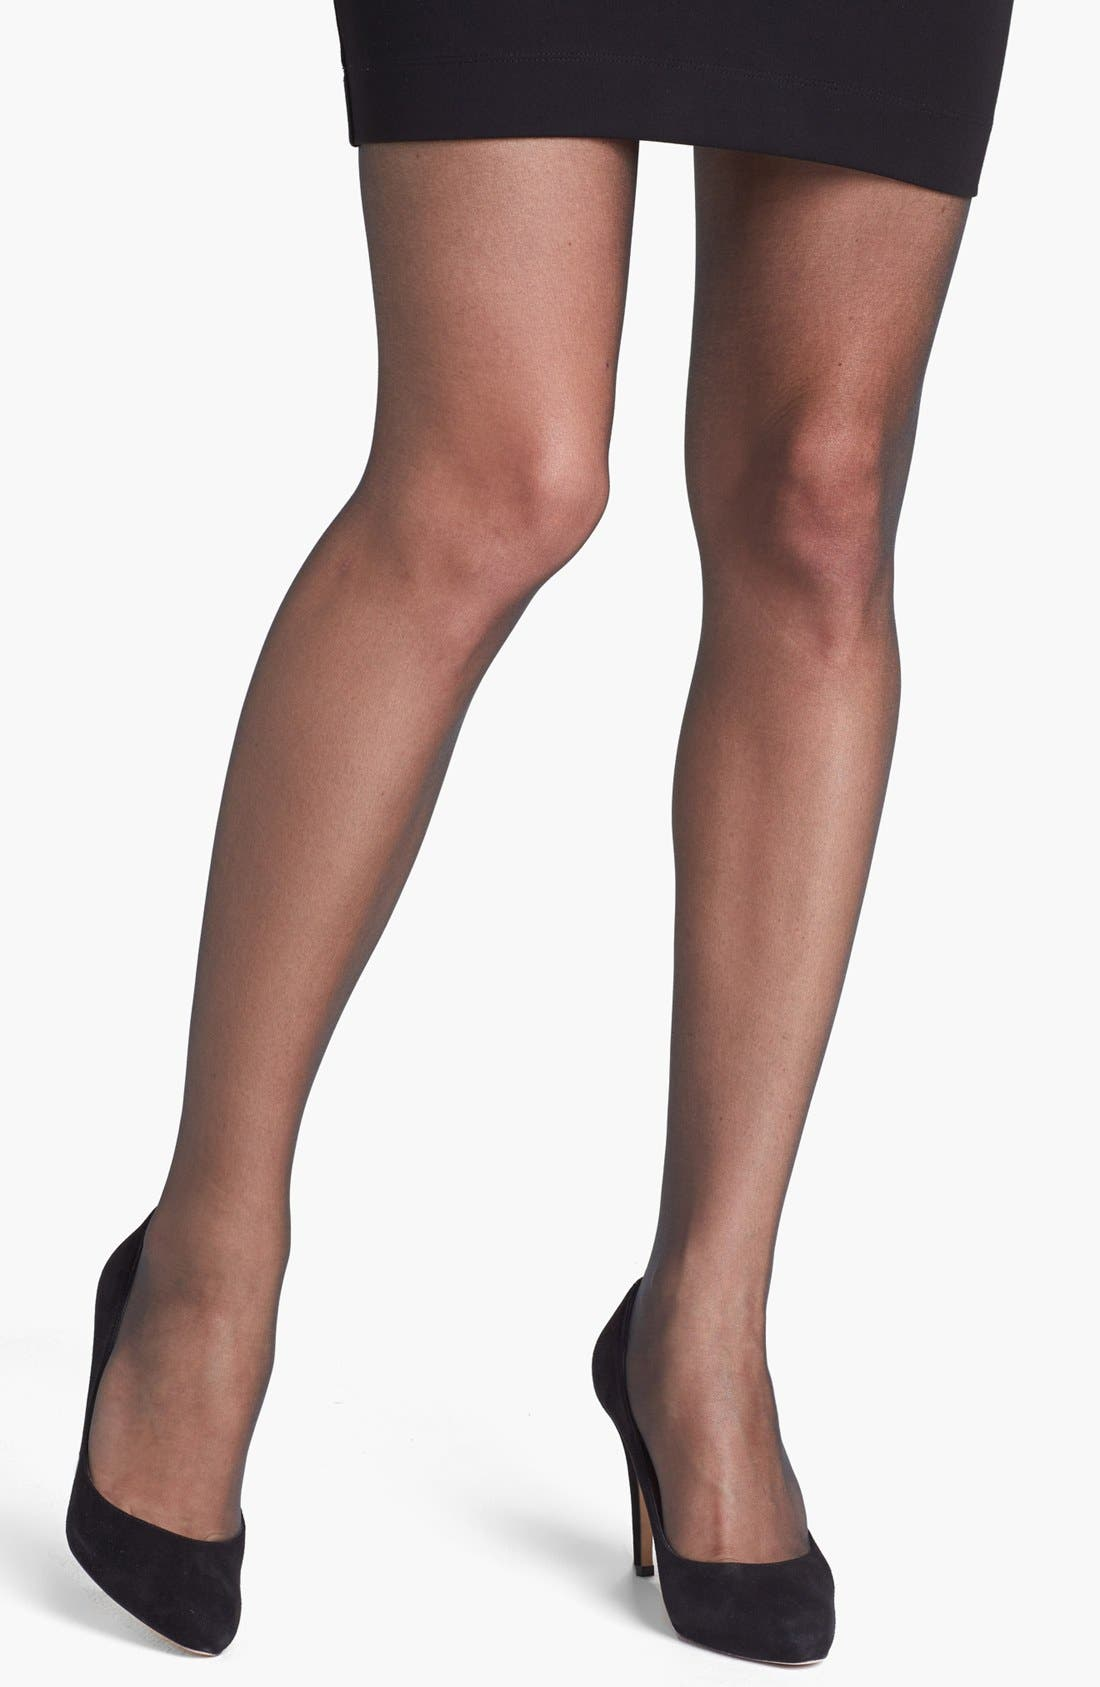 'Infinite Sheer' Control Top Pantyhose,                         Main,                         color, Black